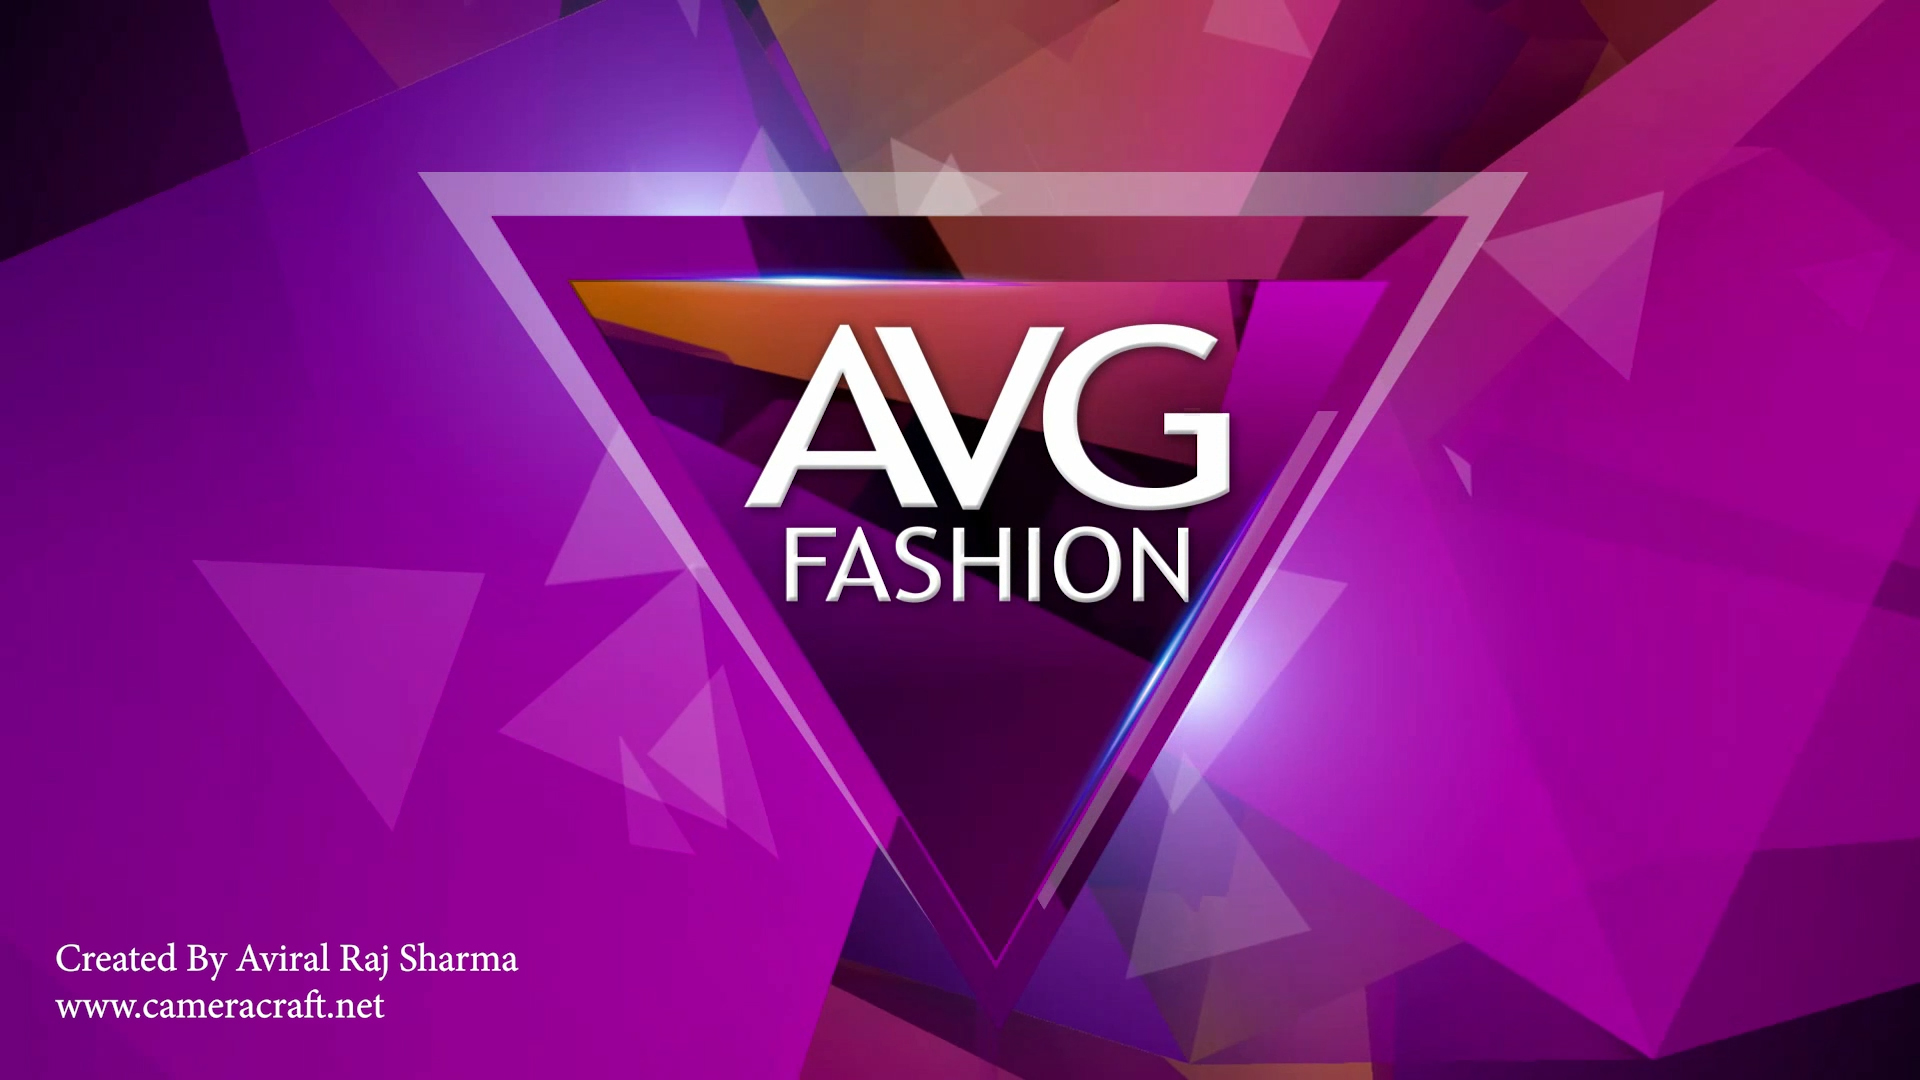 AVG Fashion - camera-craft